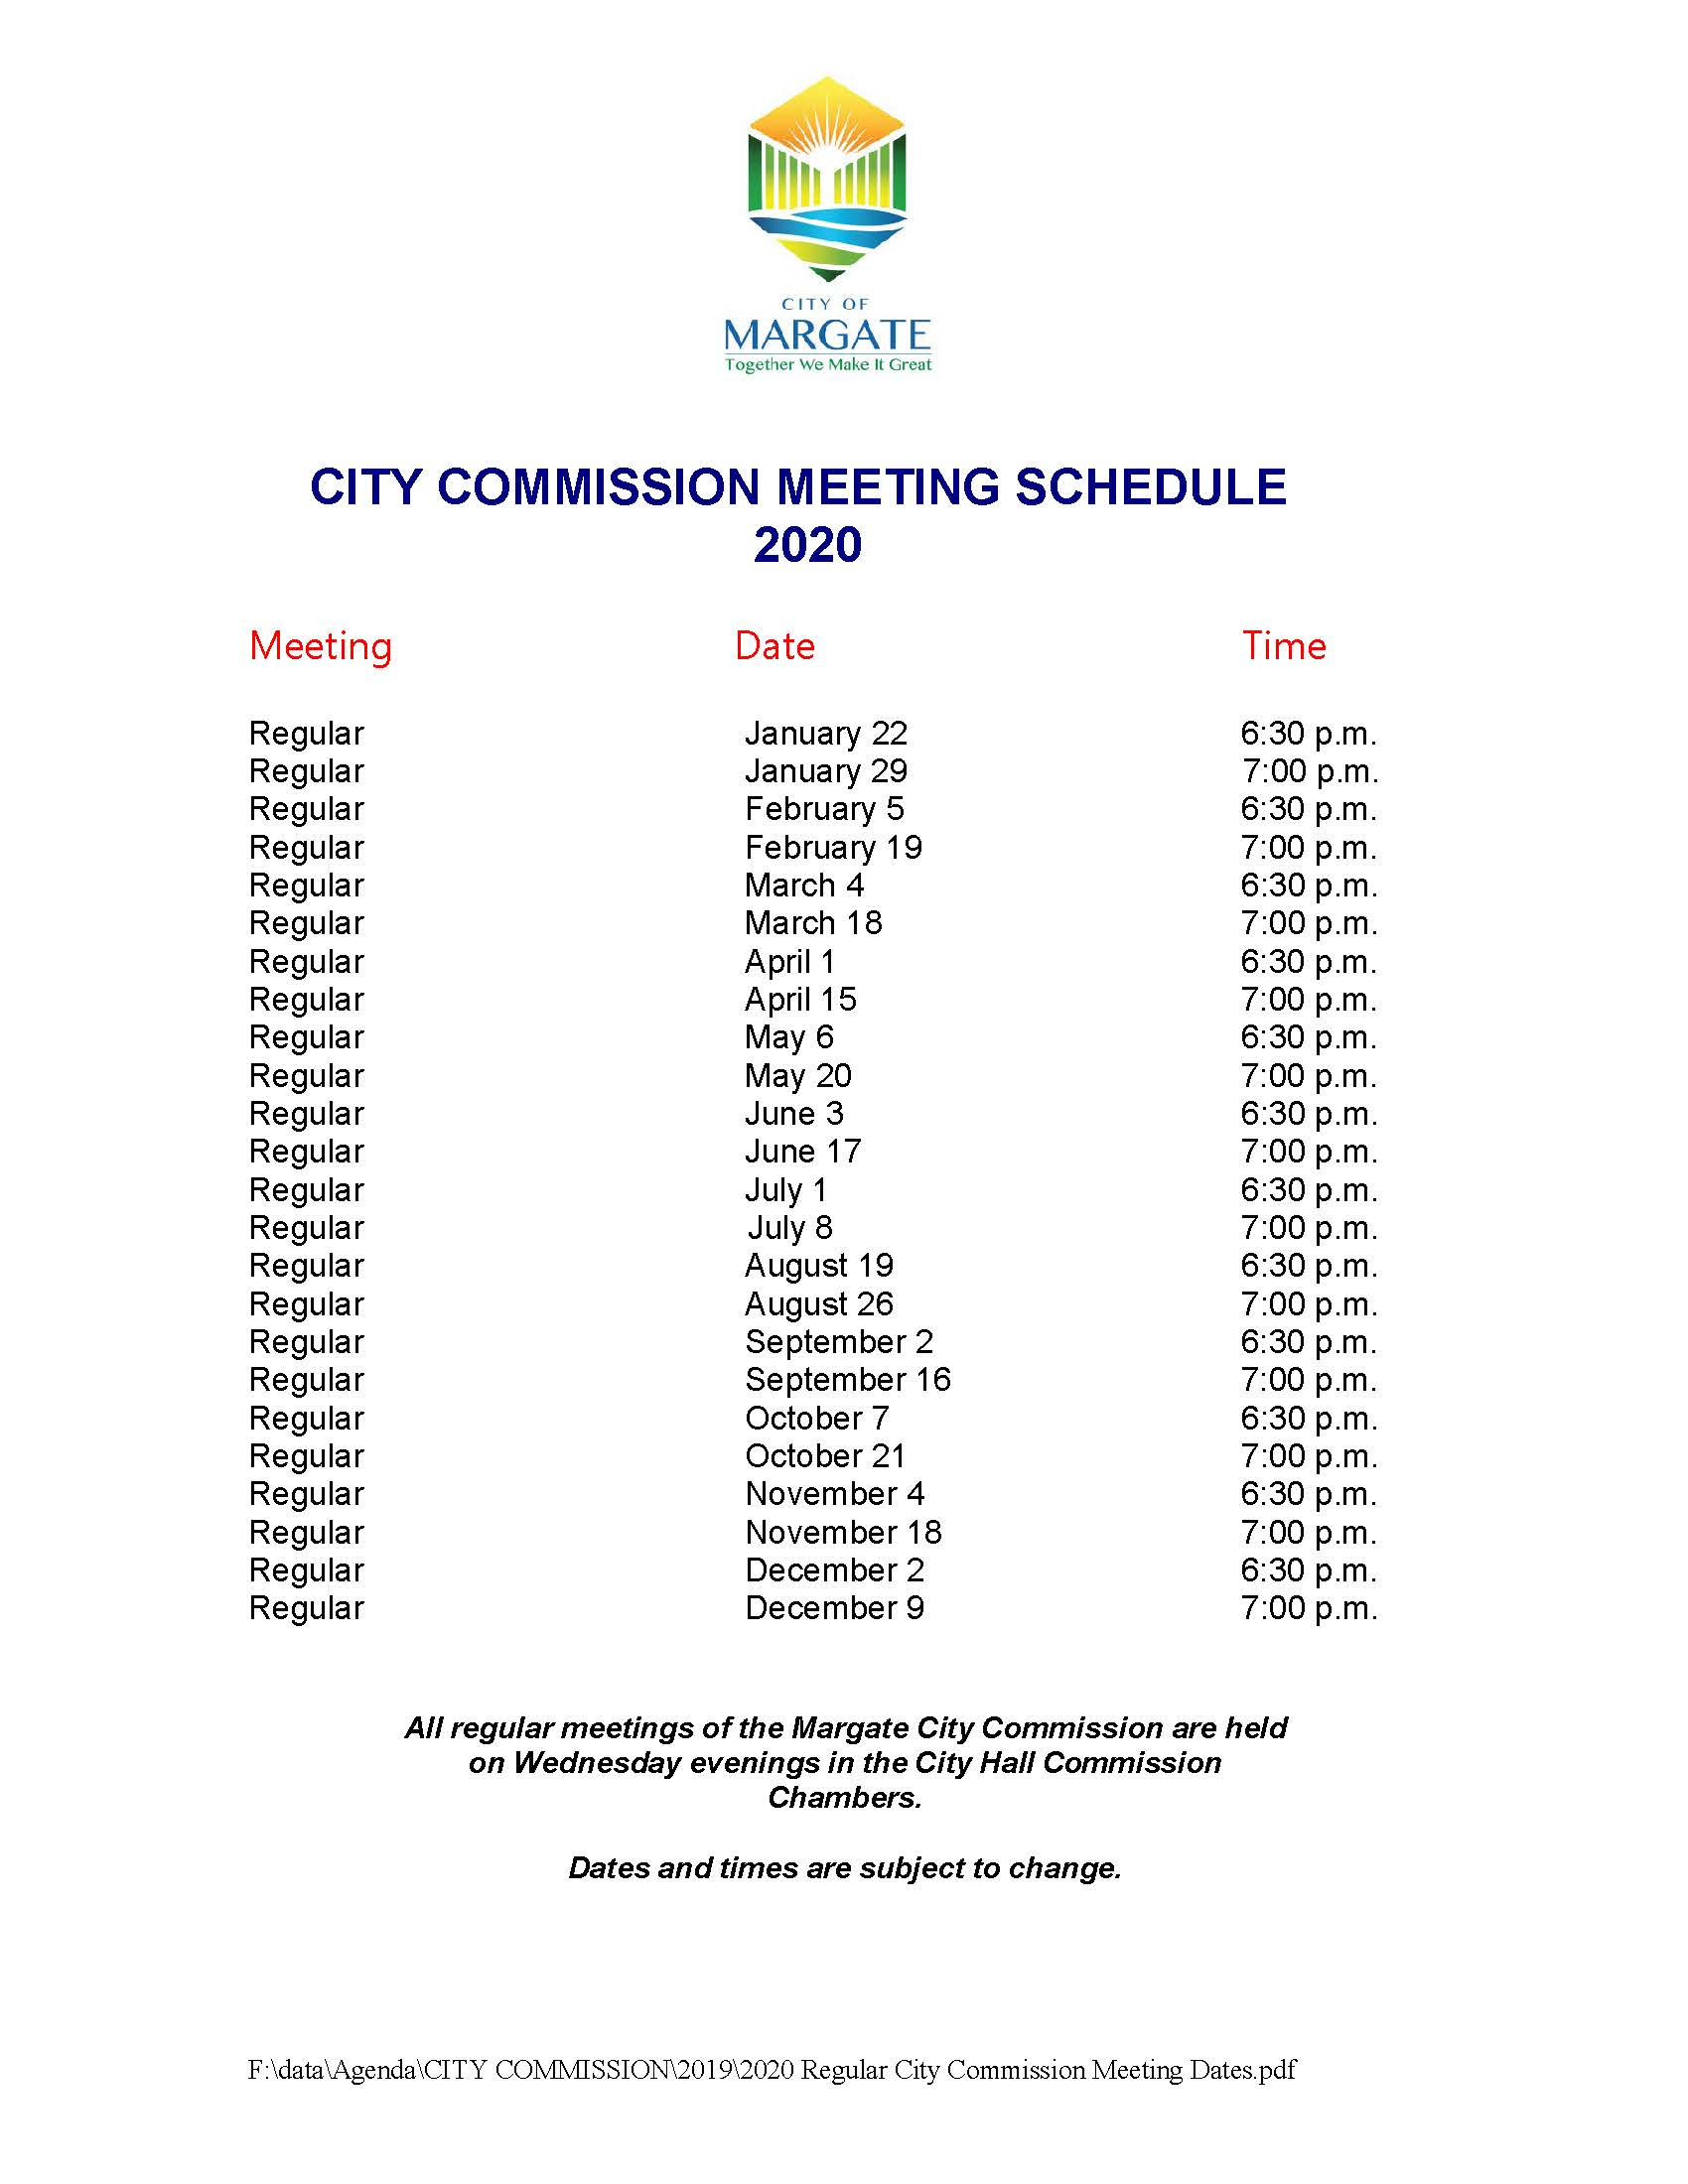 2020 Regular City Commission Meeting Dates